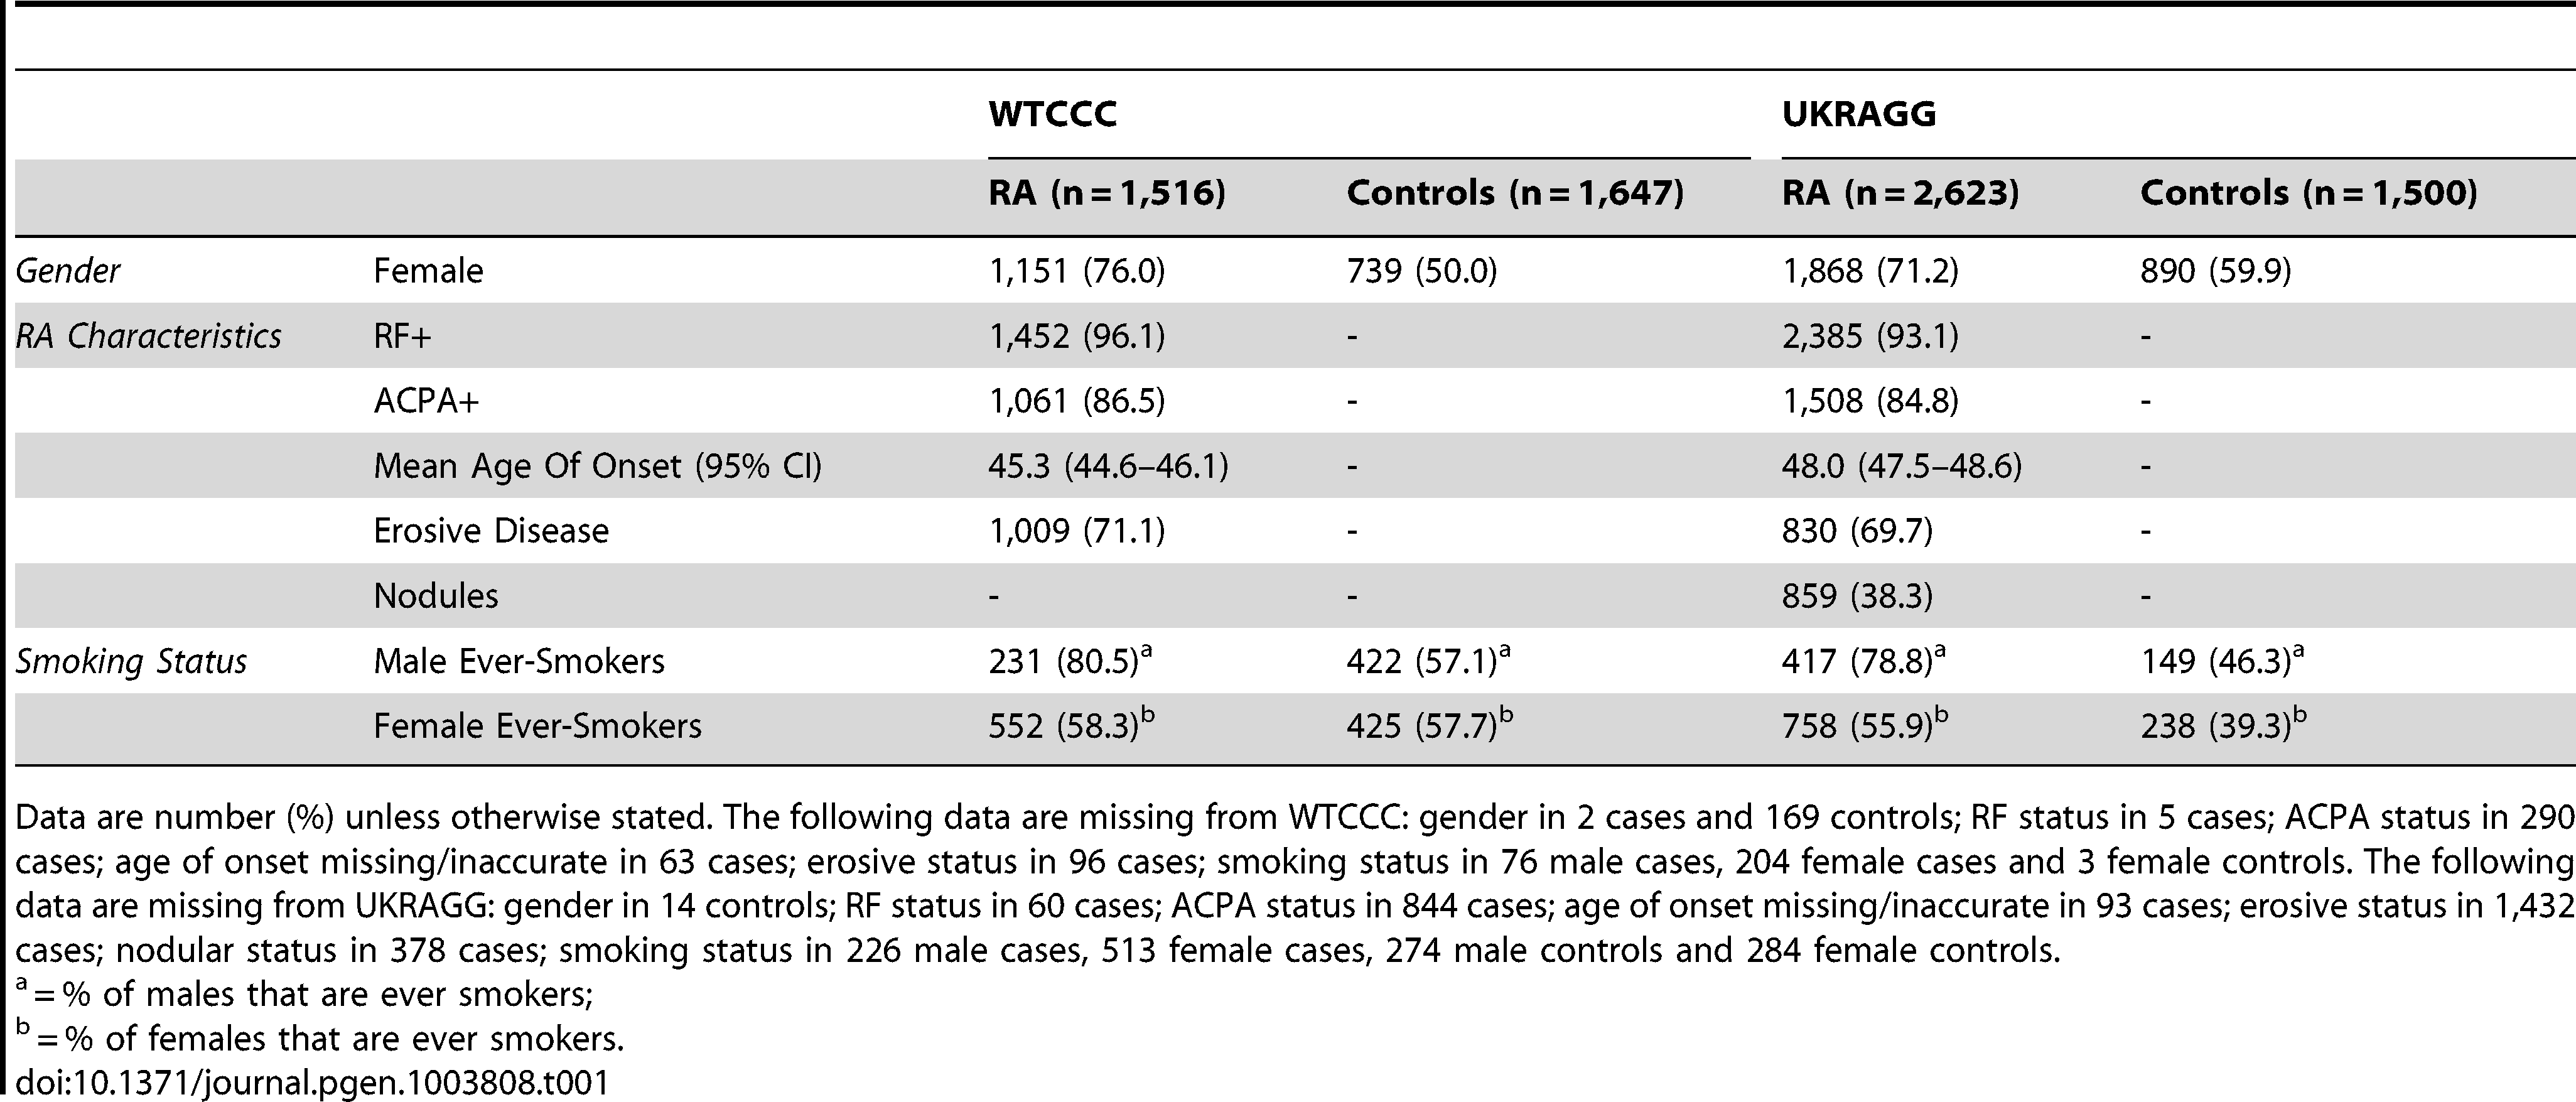 Clinical characteristics of WTCCC/UKRAGG cases and controls included in modelling.